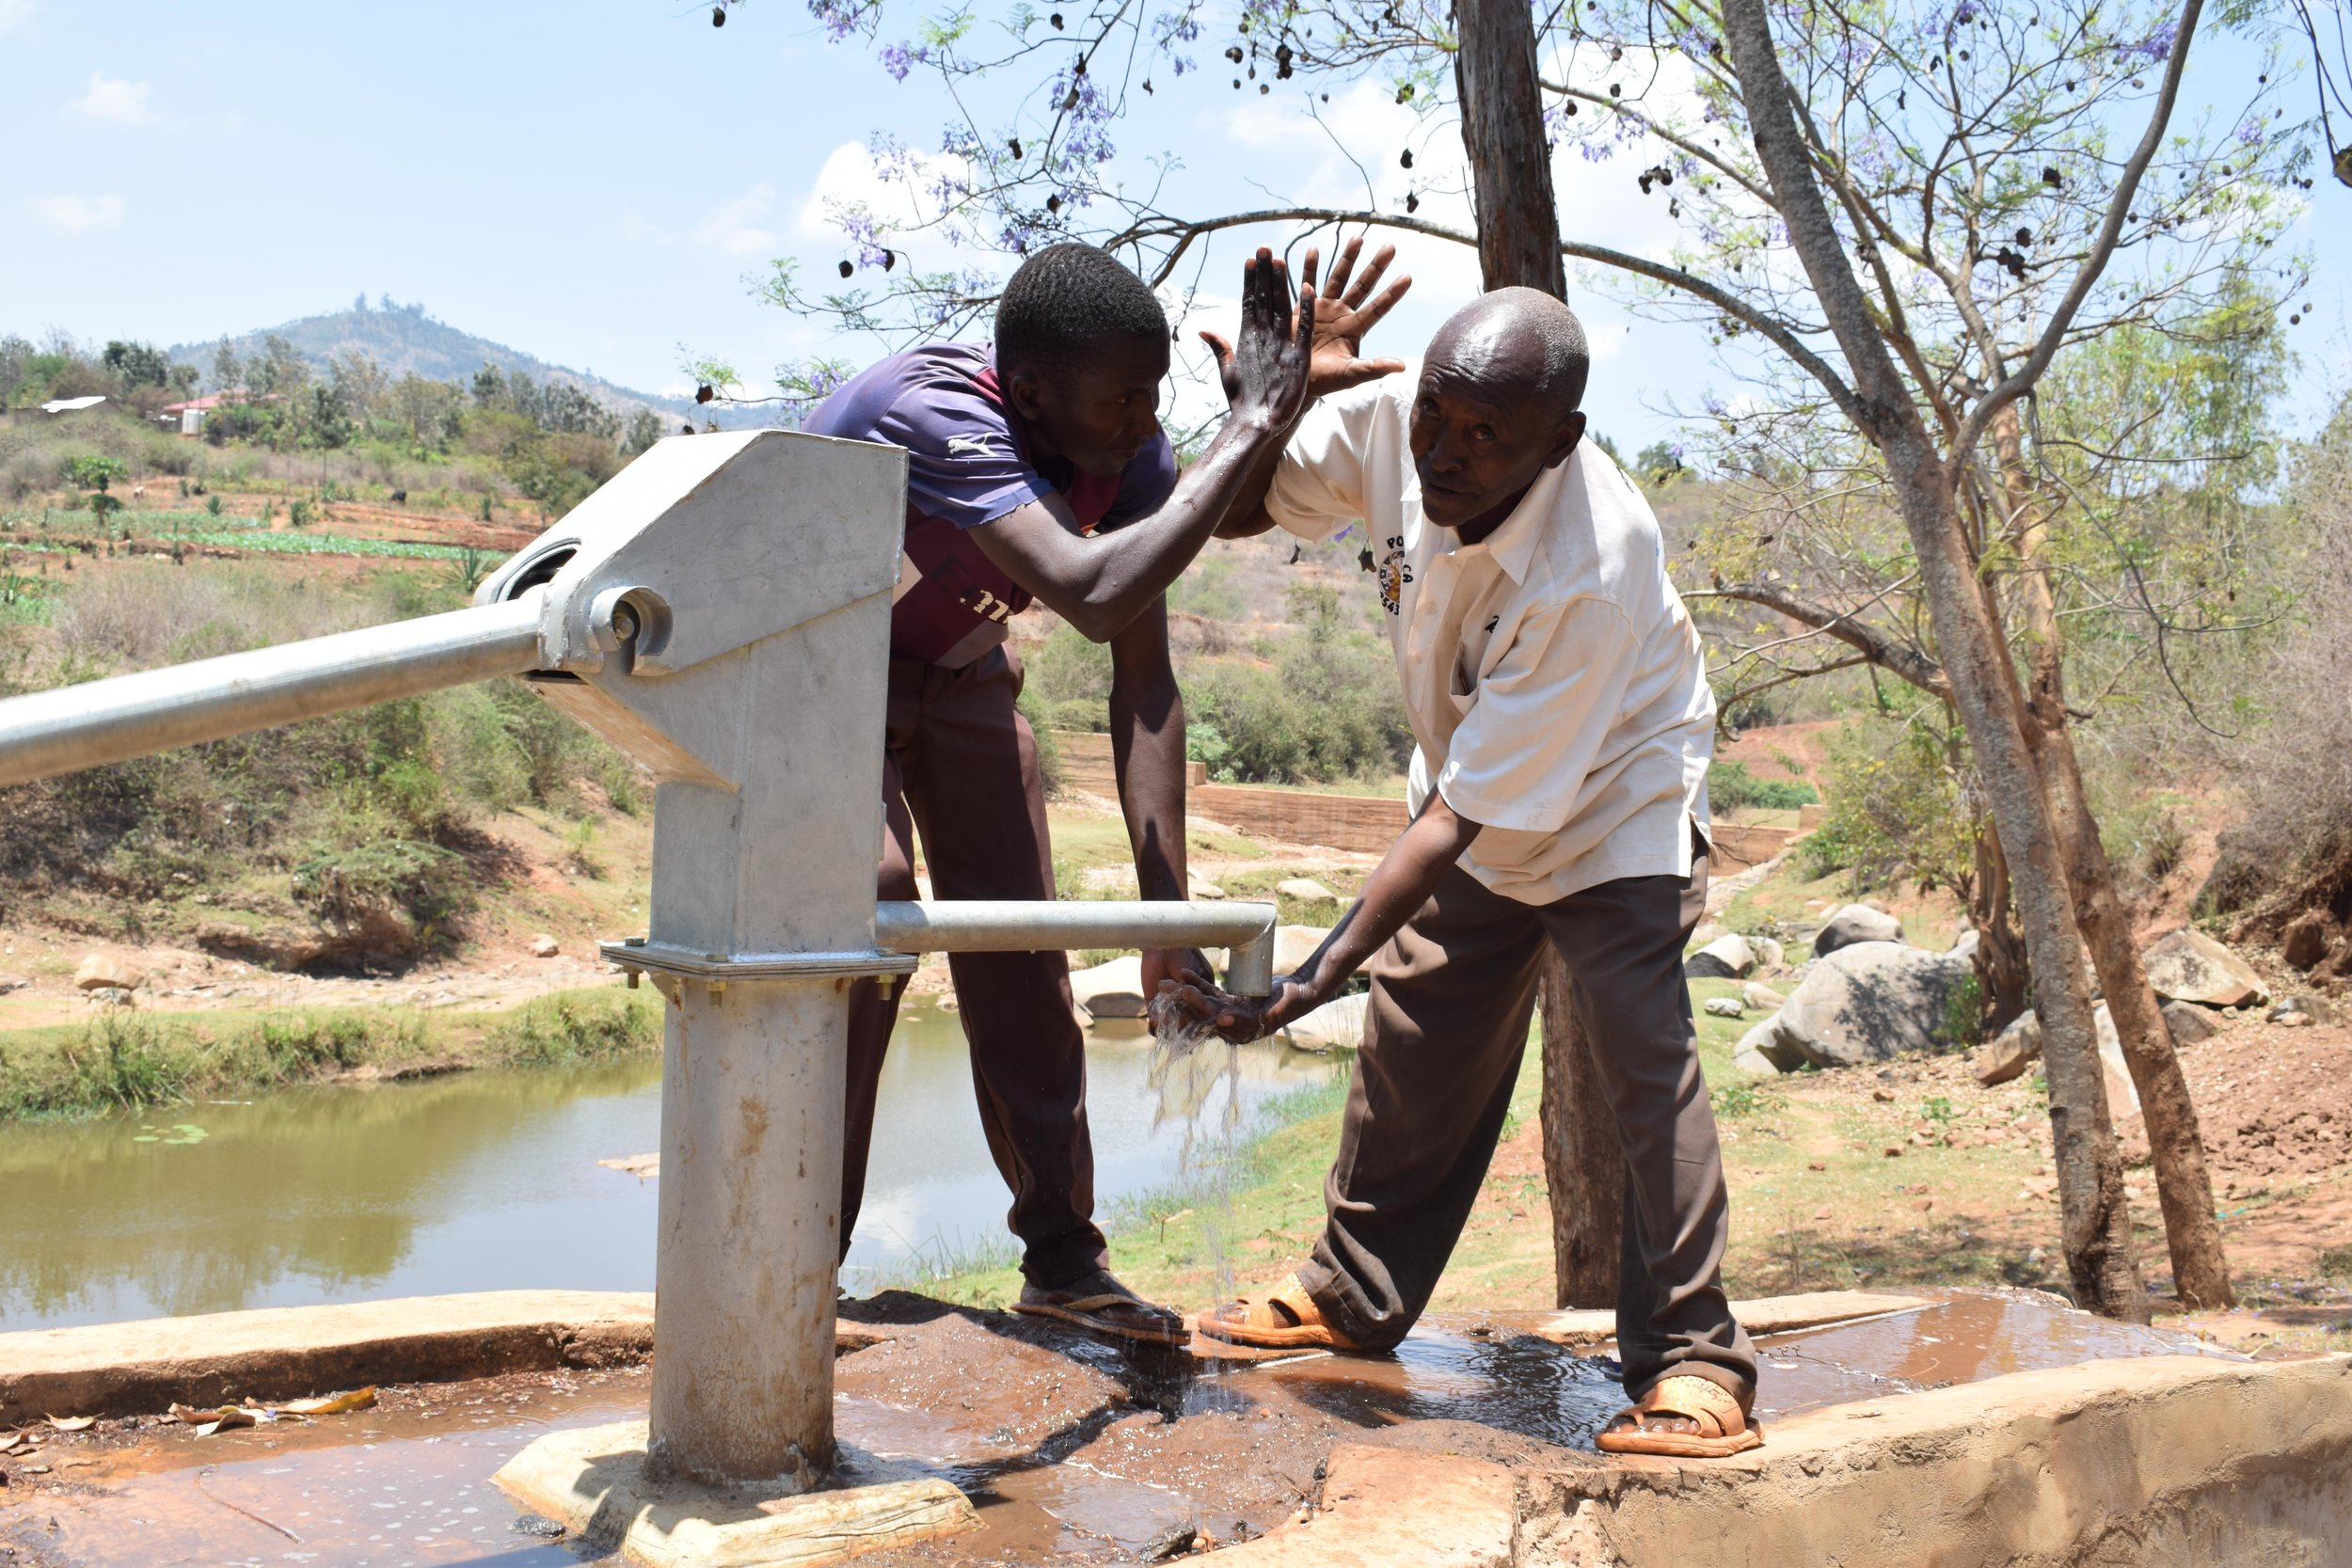 Being able to have access to clean water!